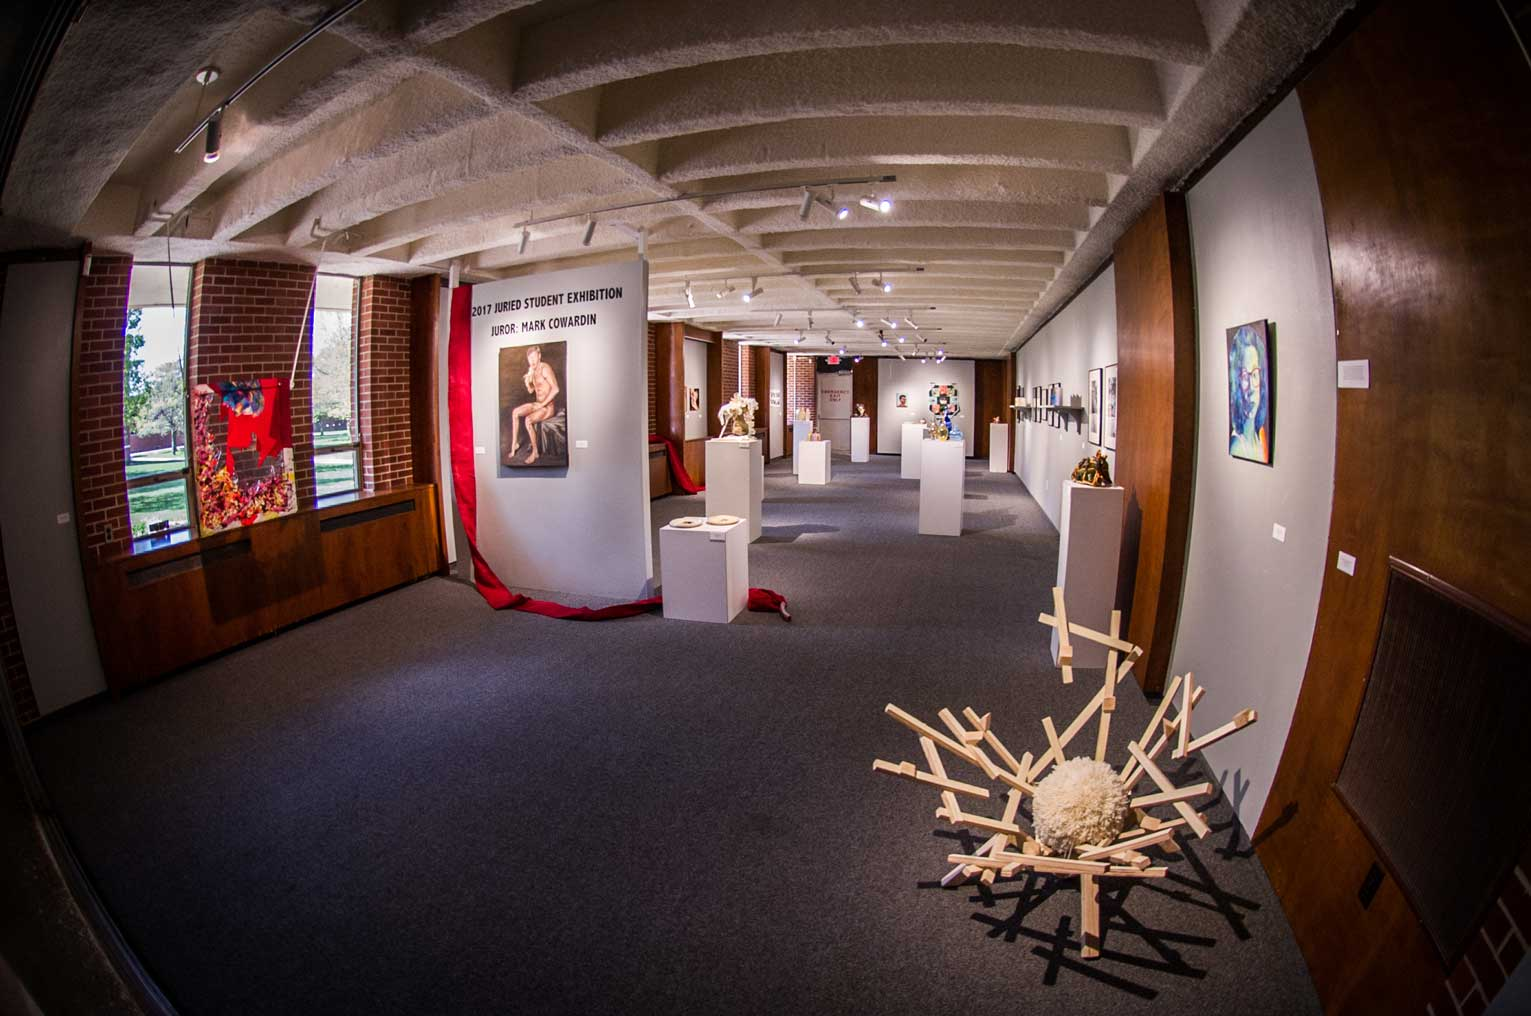 eppink gallery in king hall on Emporia state university campus